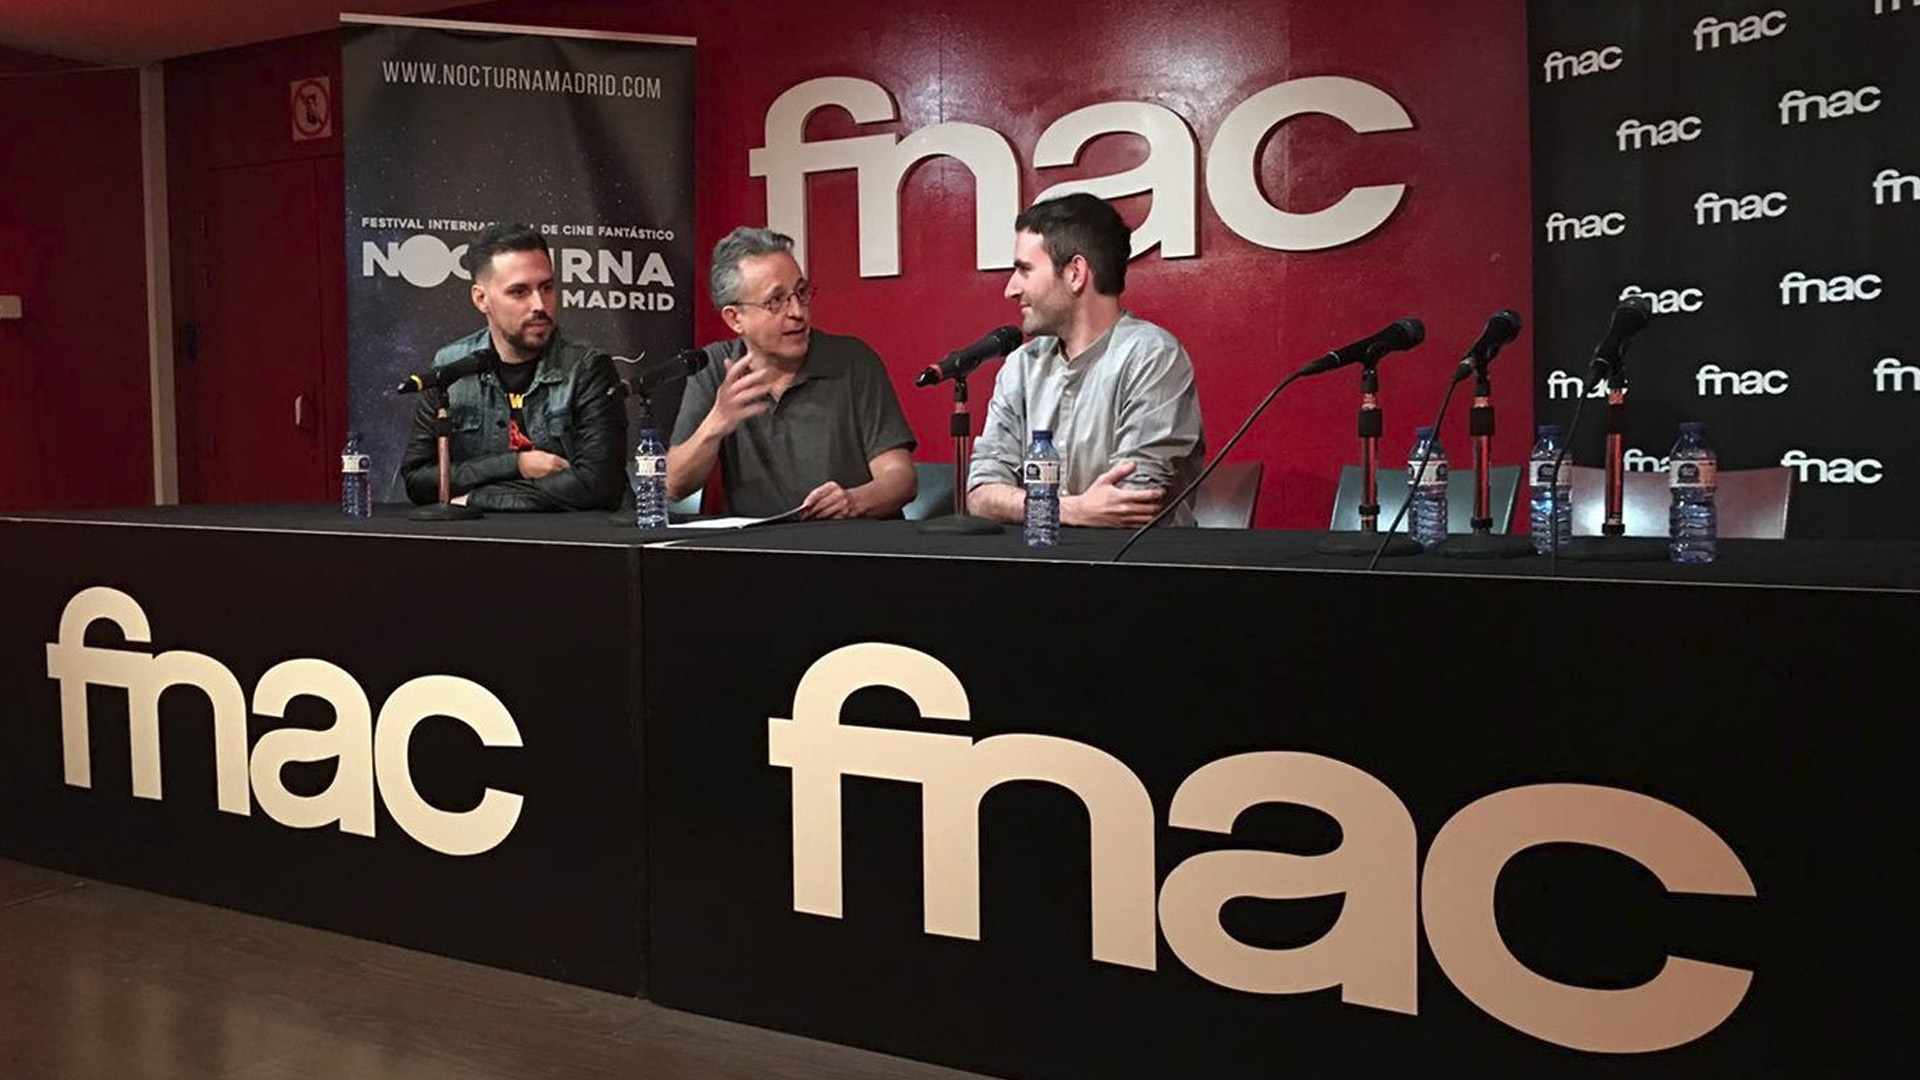 Filmmakers at the Nocturna festival in Madrid, at Forum FNAC Callao.